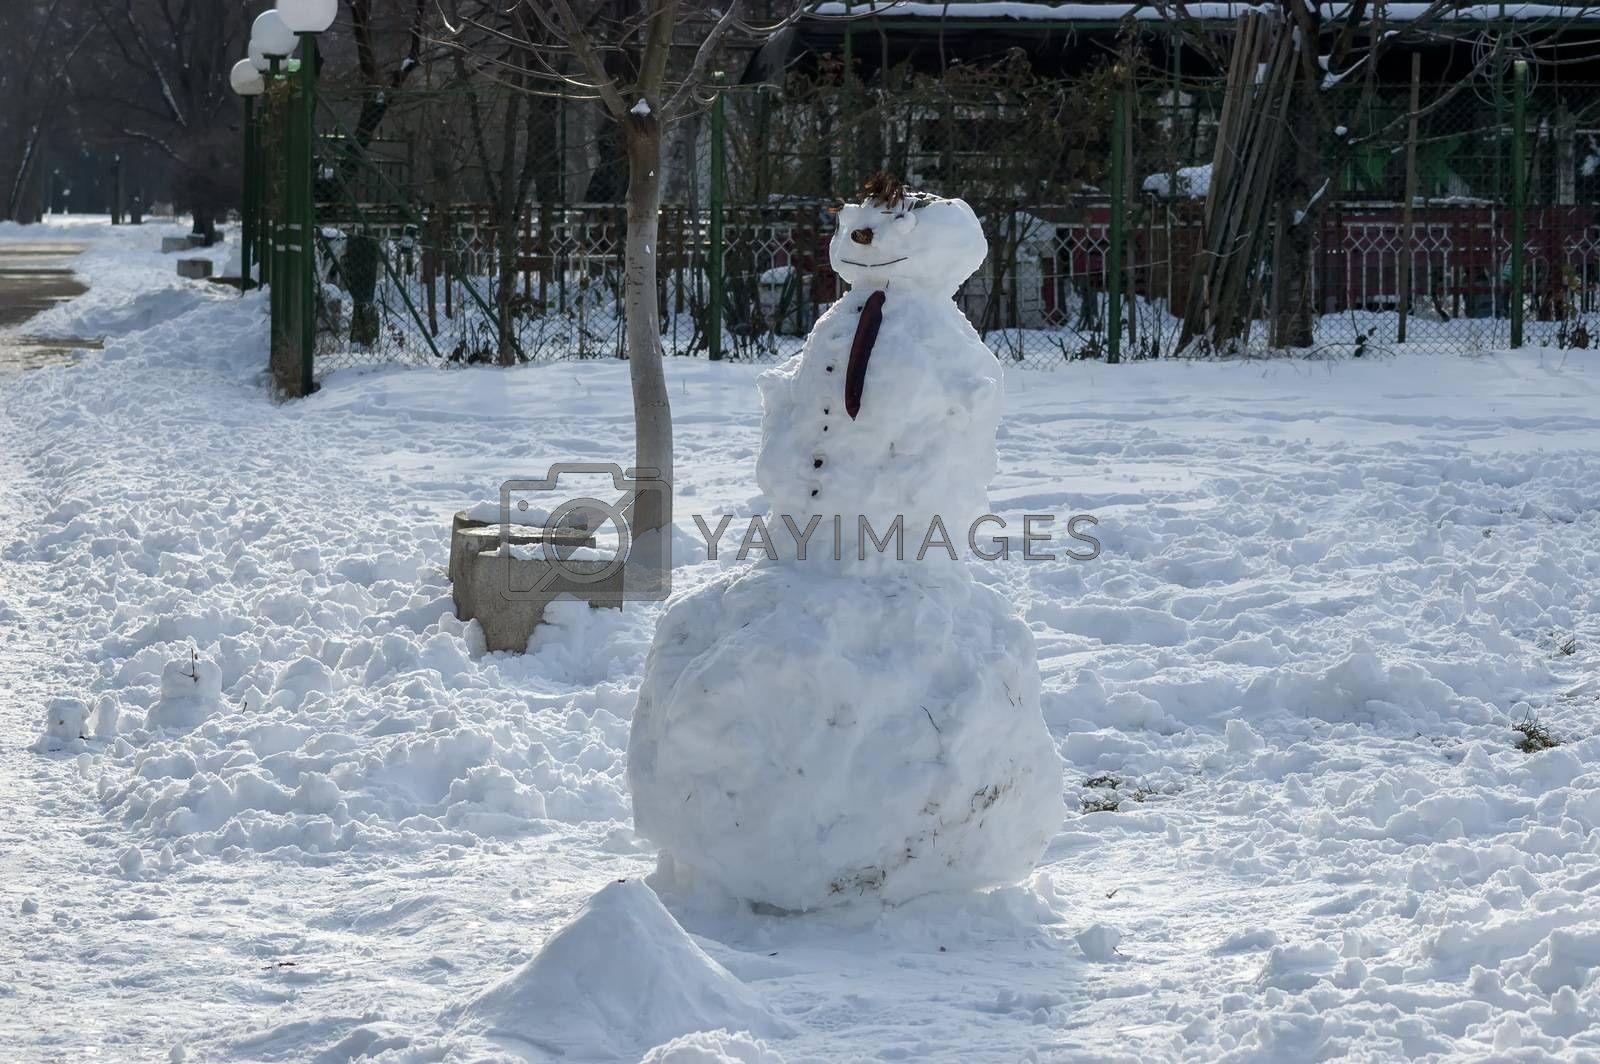 Winter scene with a snowman made with handy materials in the park by vili45